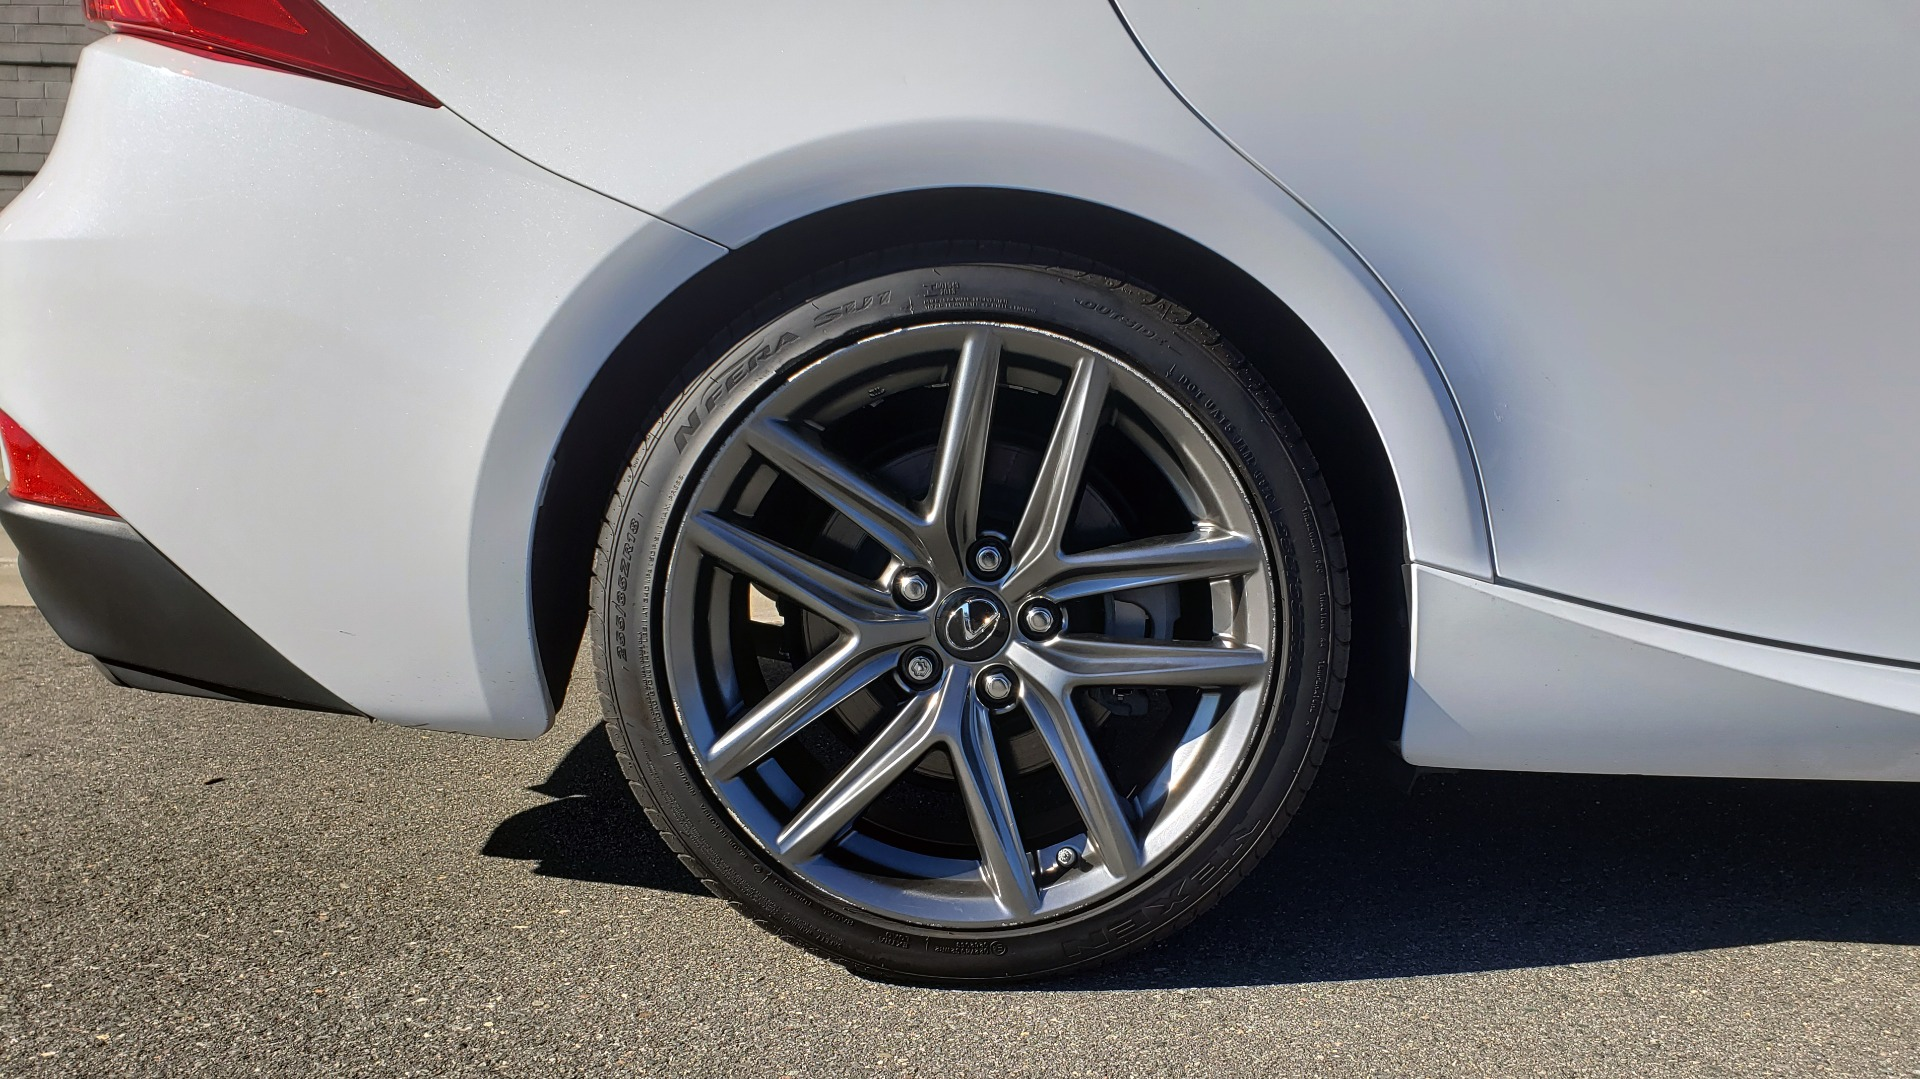 Used 2018 Lexus IS 300 F-SPORT / BSM / SUNROOF / REARVIEW / 18IN WHEELS for sale Sold at Formula Imports in Charlotte NC 28227 74